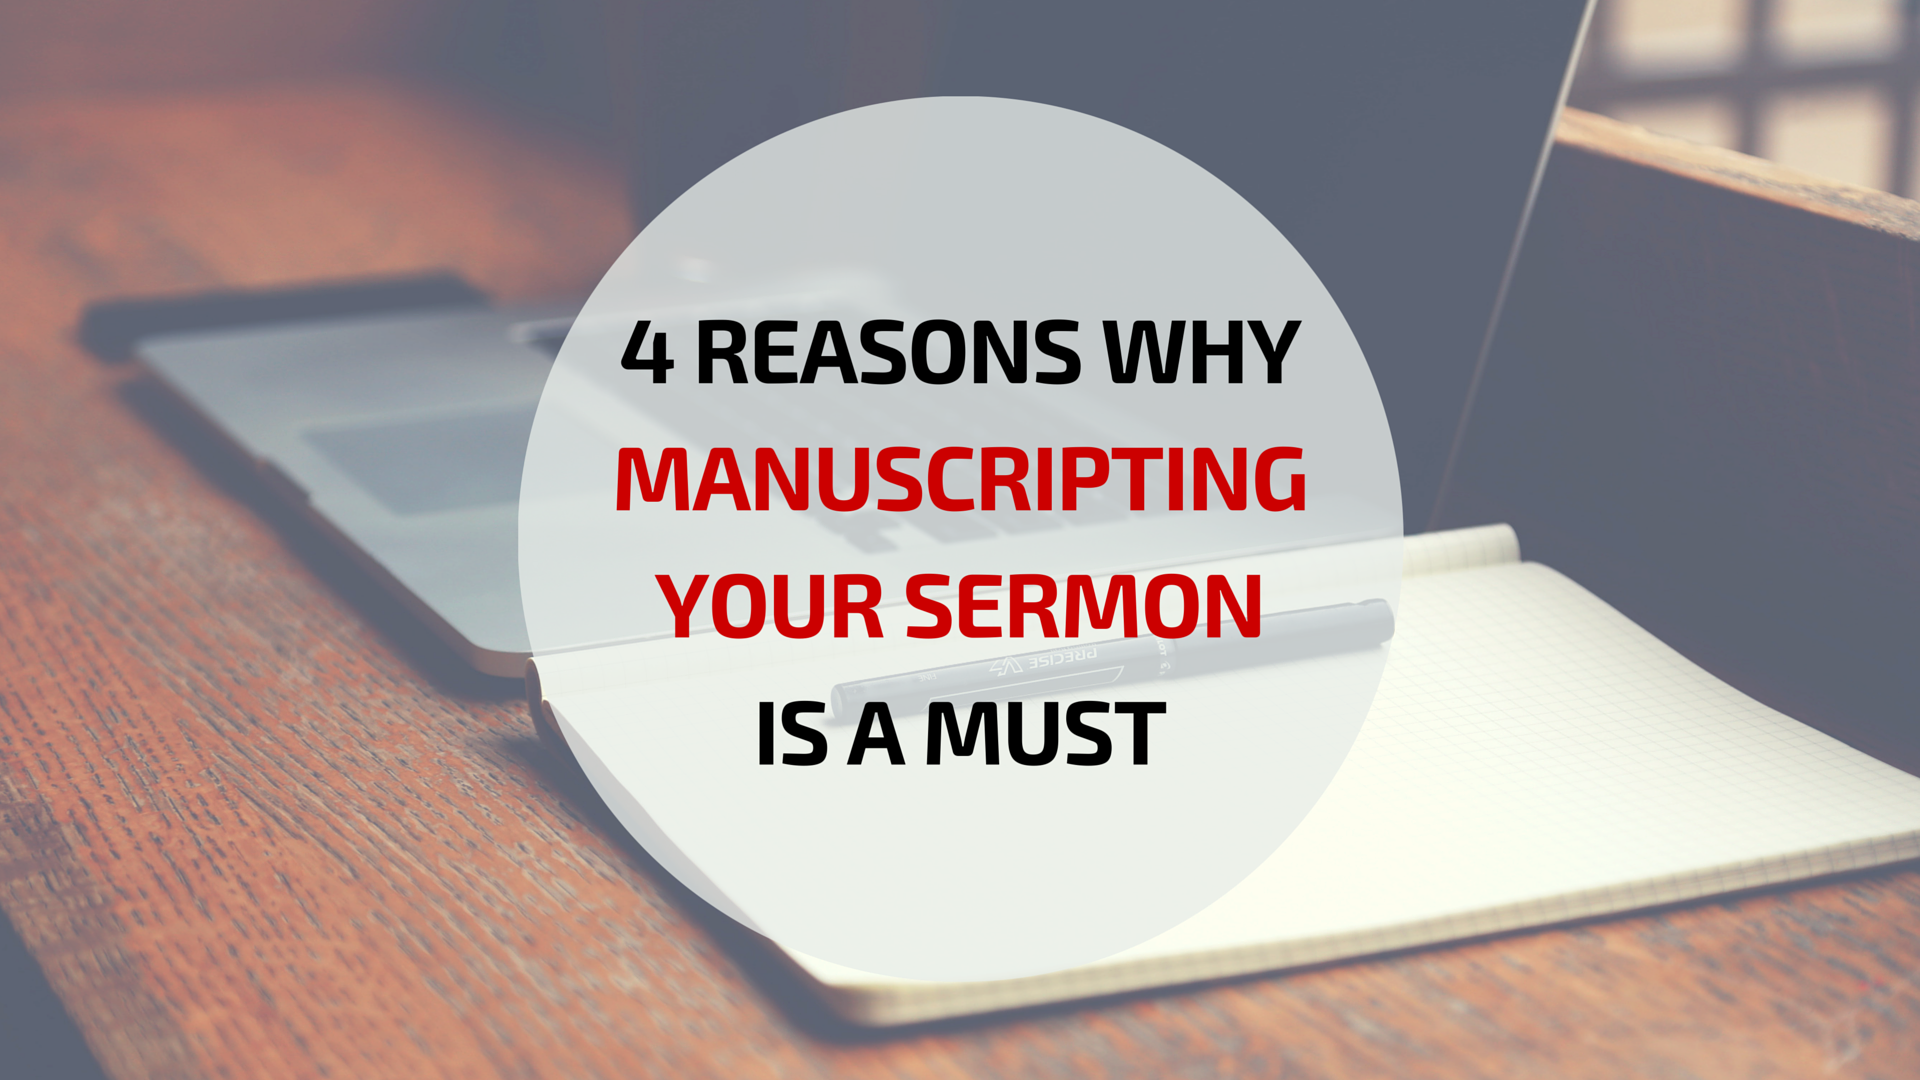 4 Reasons Why Manuscripting Your Sermon is a Must